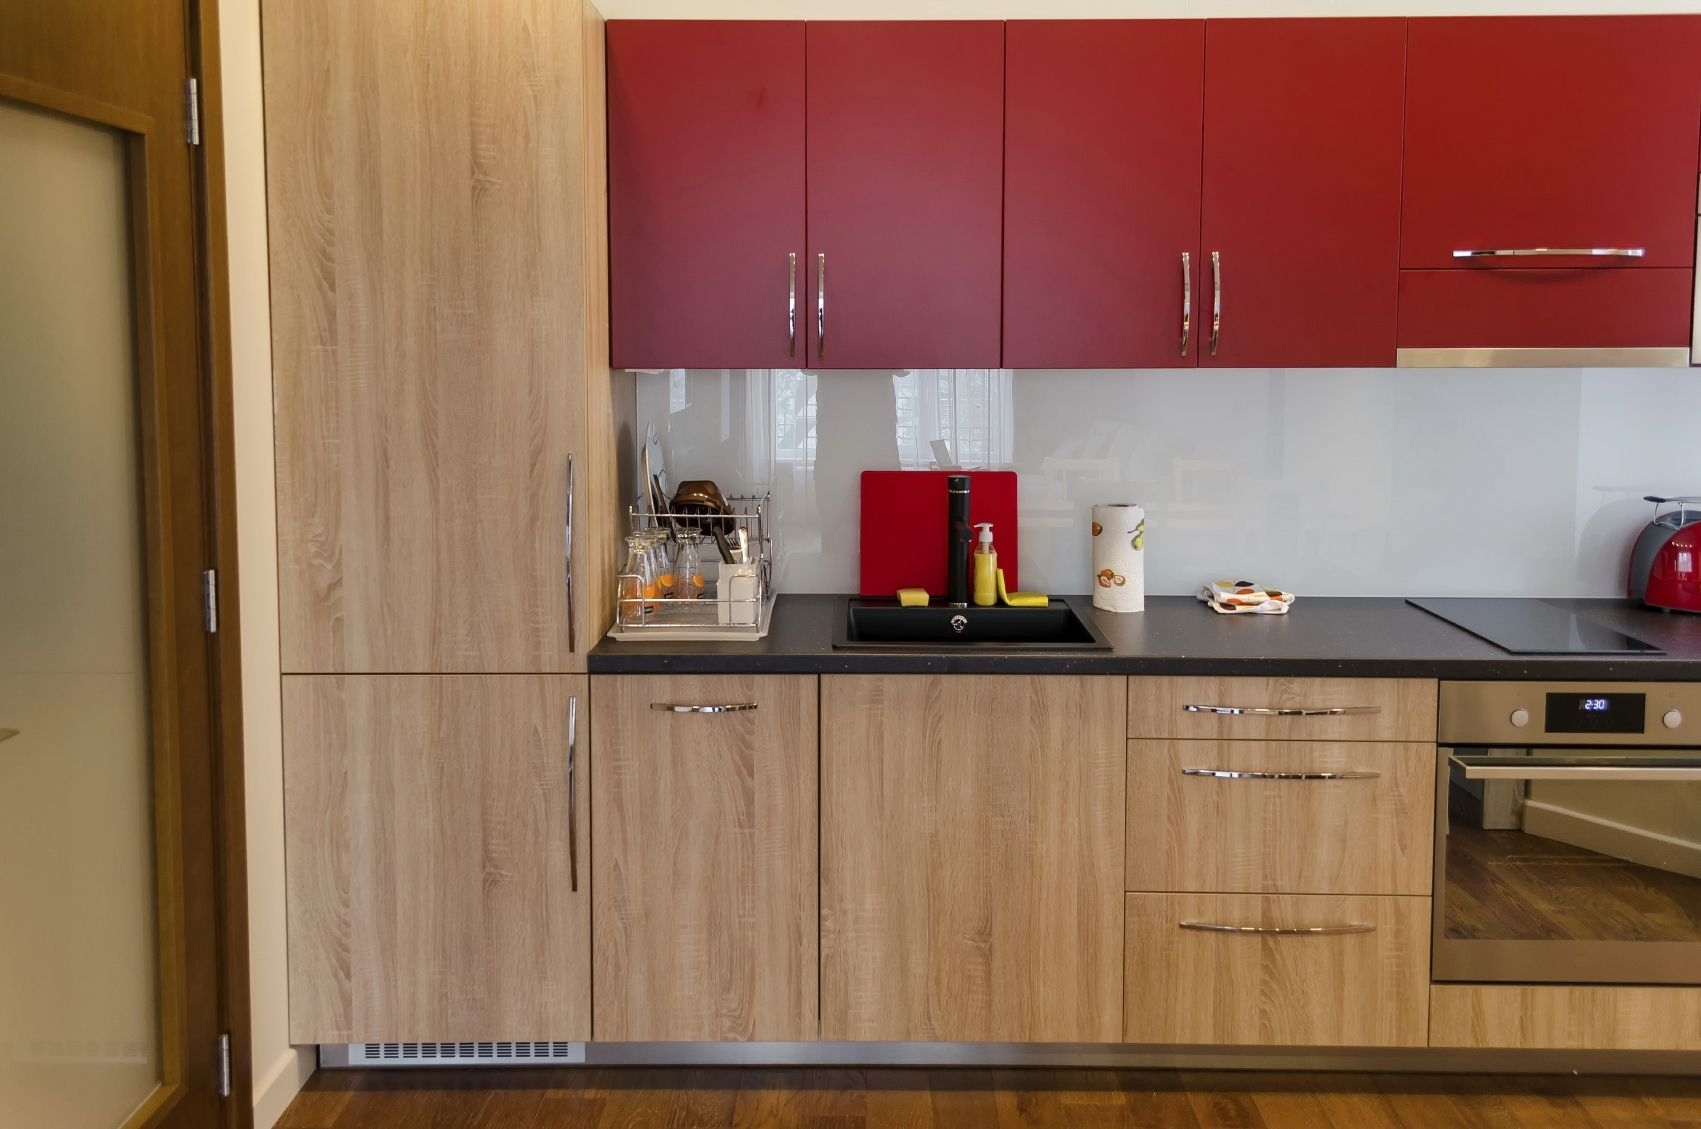 How To Paint Kemper Kitchen Cabinets